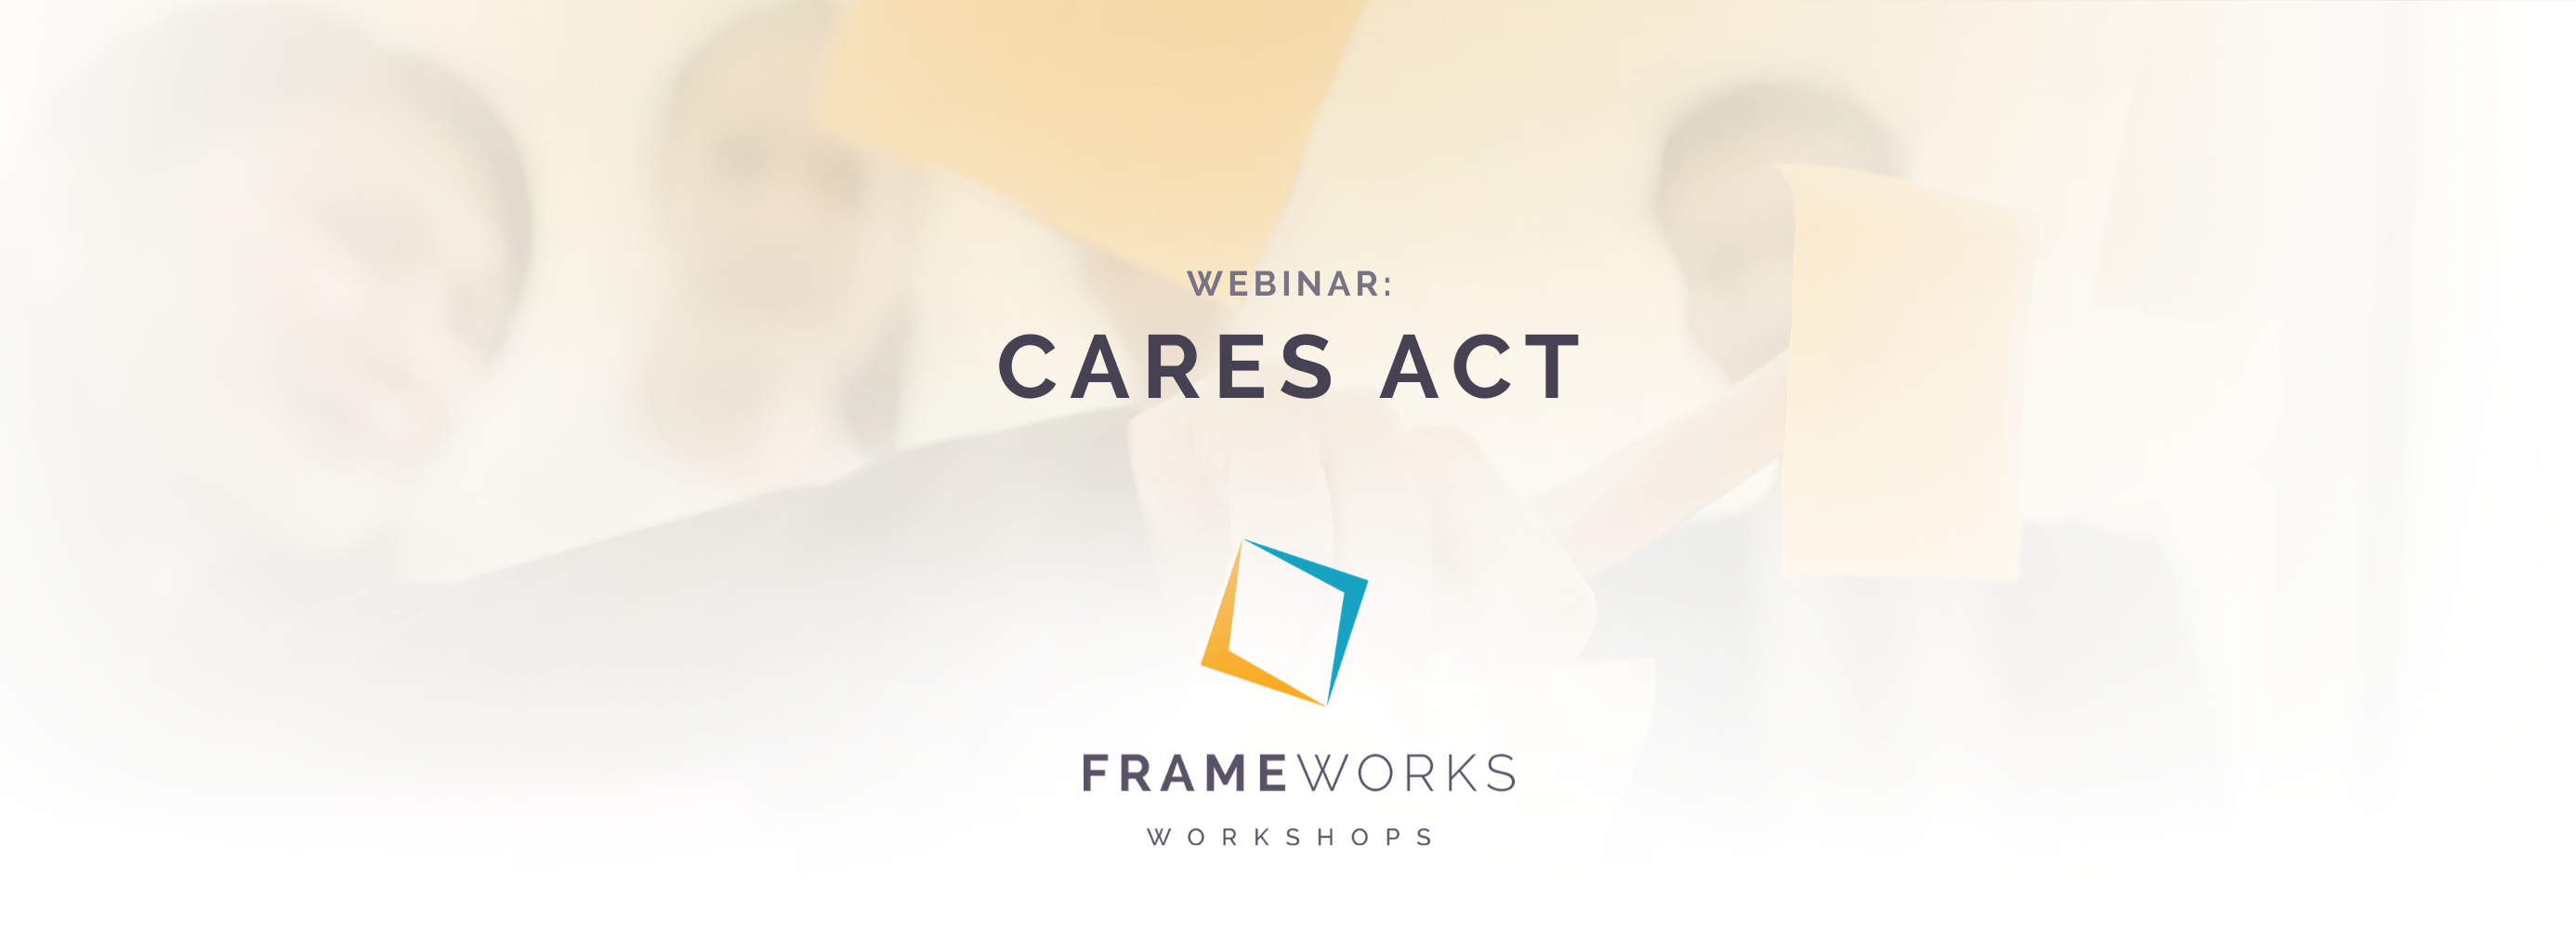 Connect San Diego | Frameworks Webinar w/ Moss Adams on the CARES Act